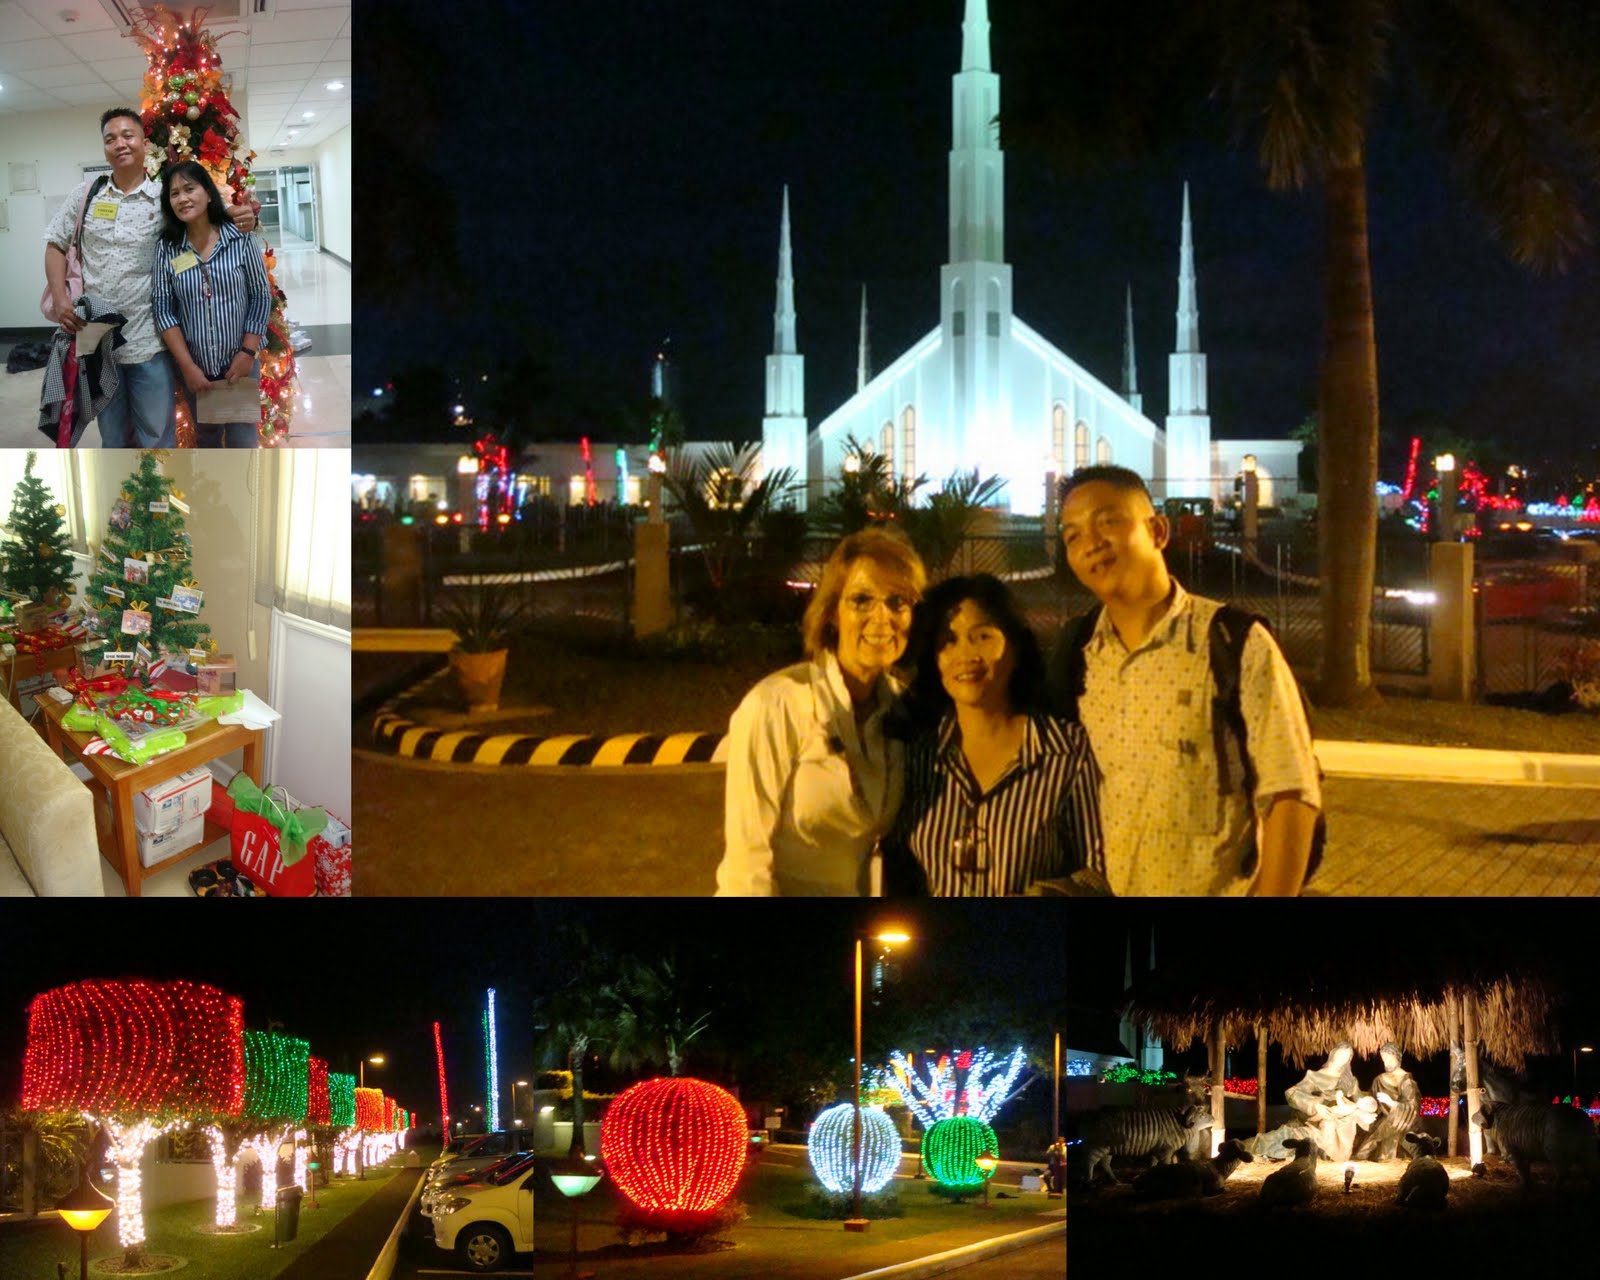 Philippine Quezon City Mission Christmas In The Philippines